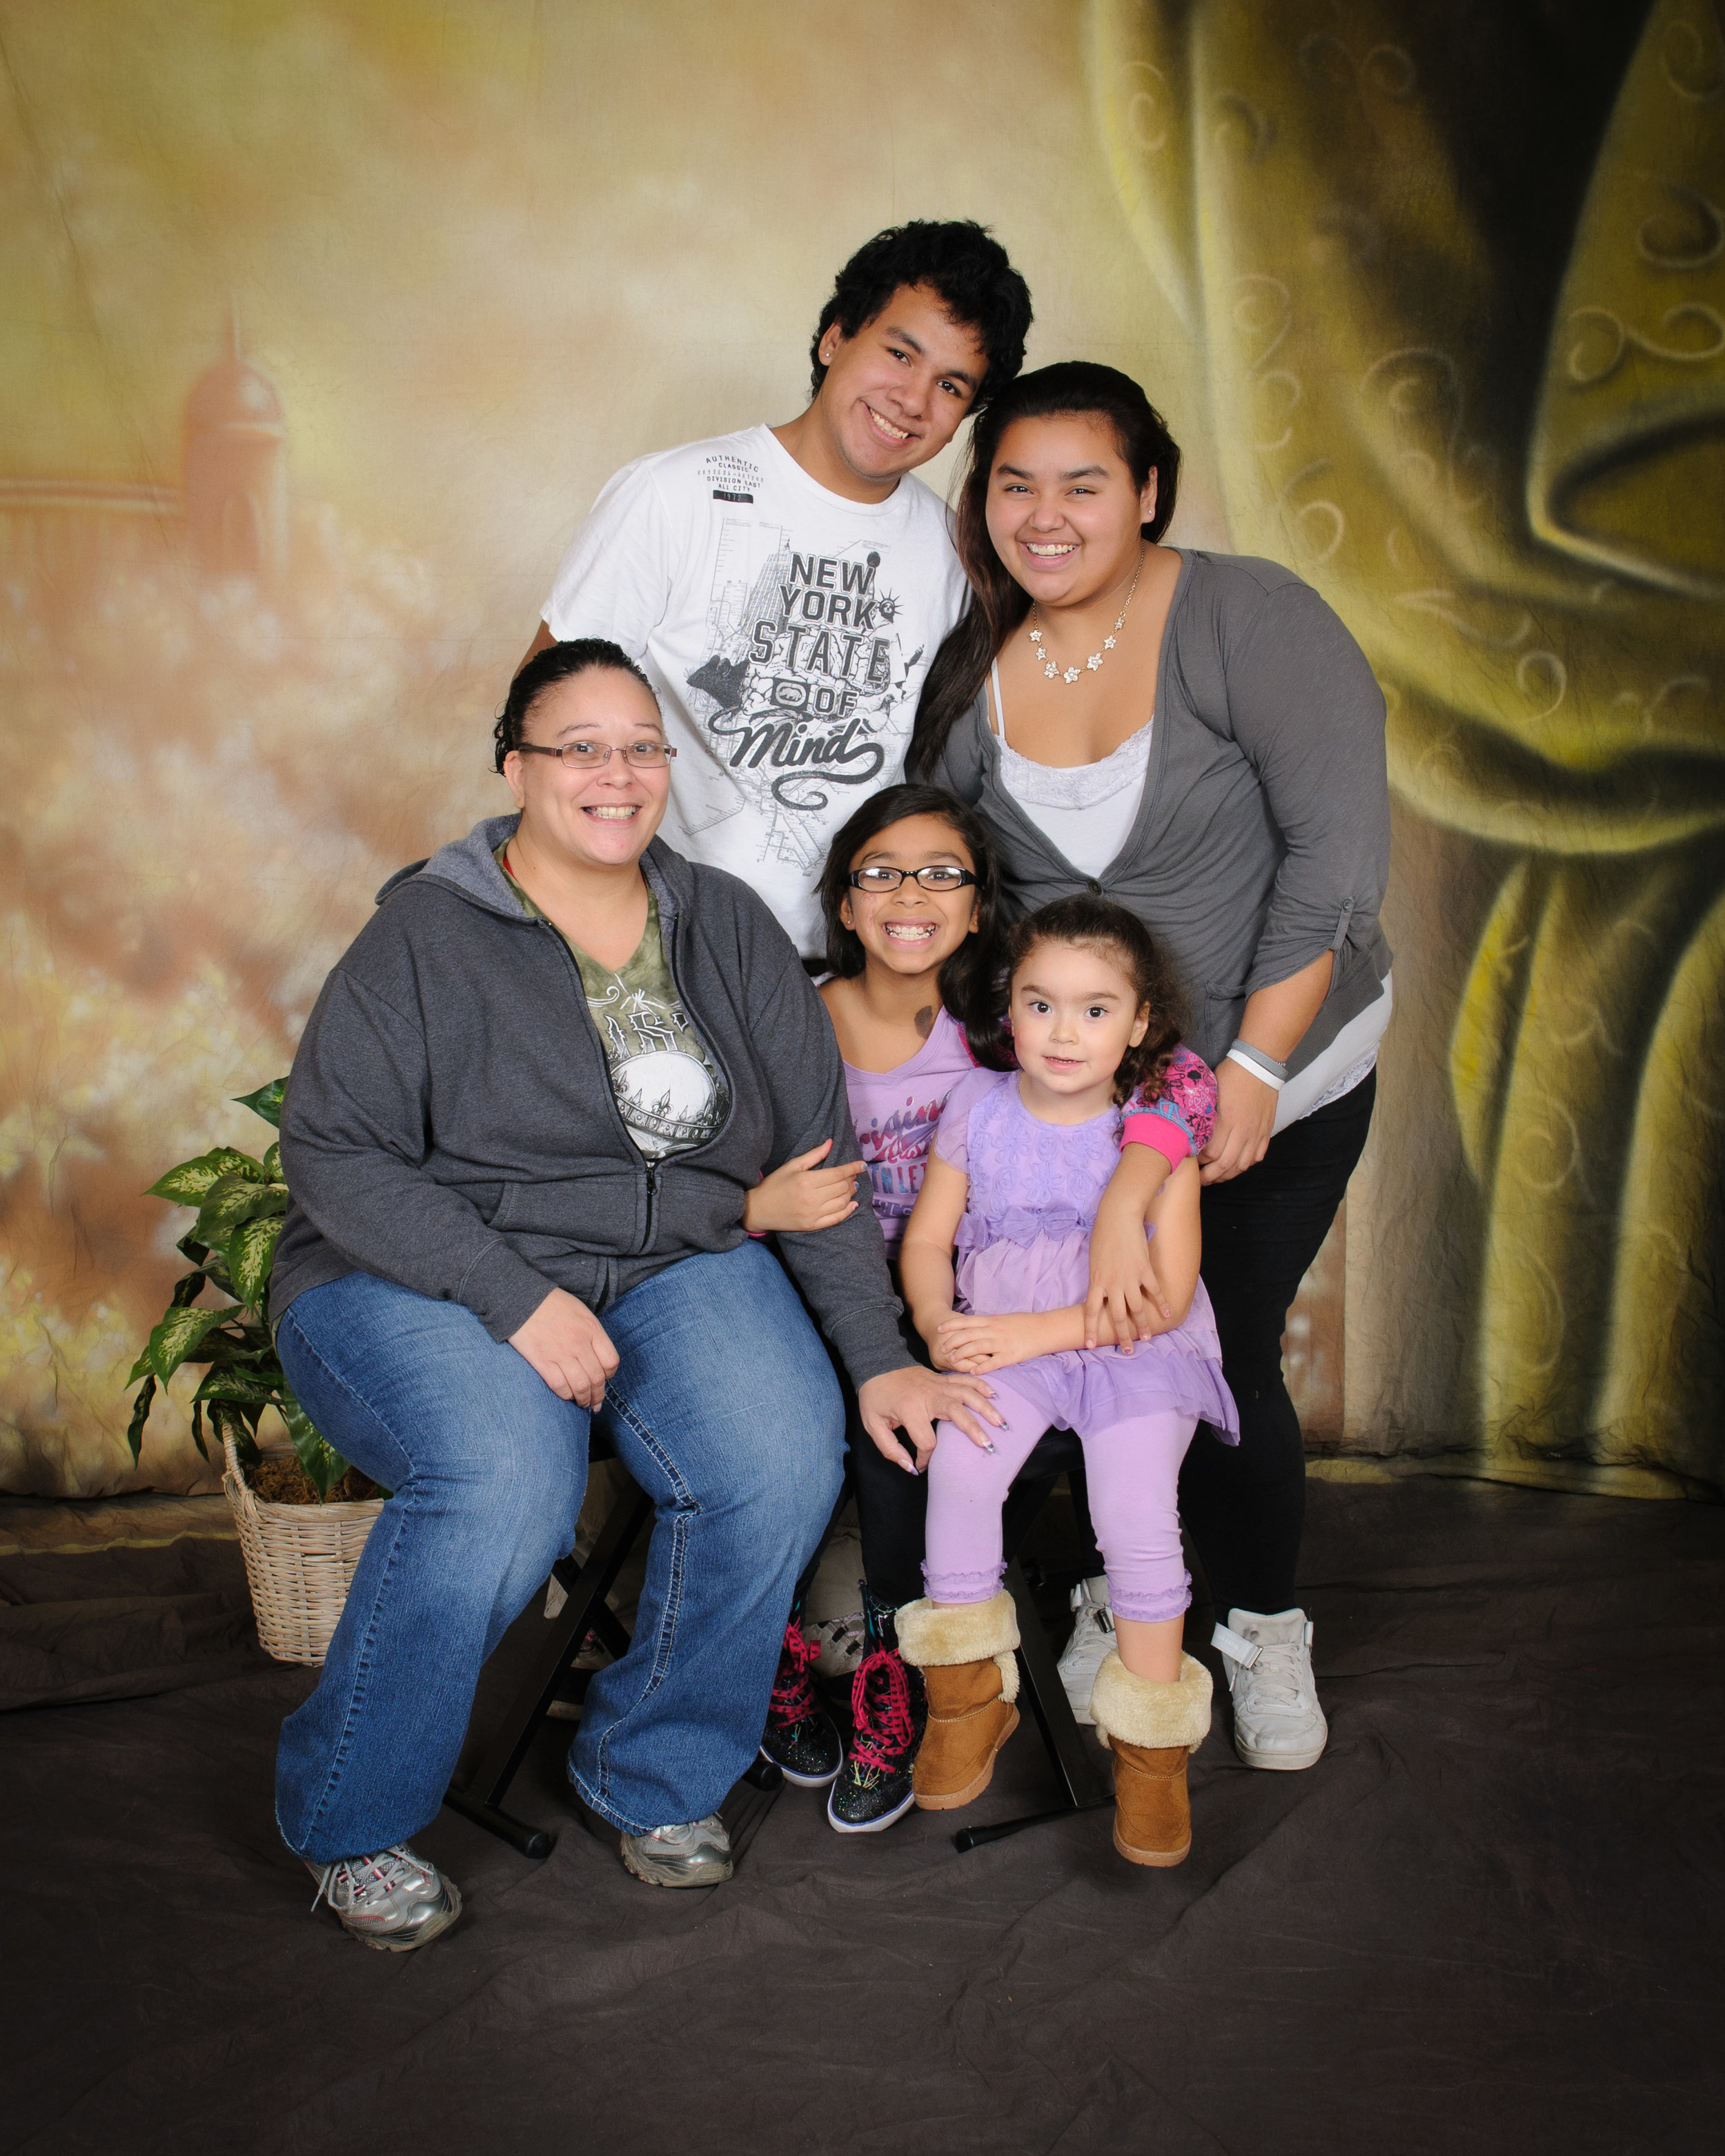 March - YanessaYanessa is a former client. She now donates on a monthly basis to help support Step By Step. She is an avid